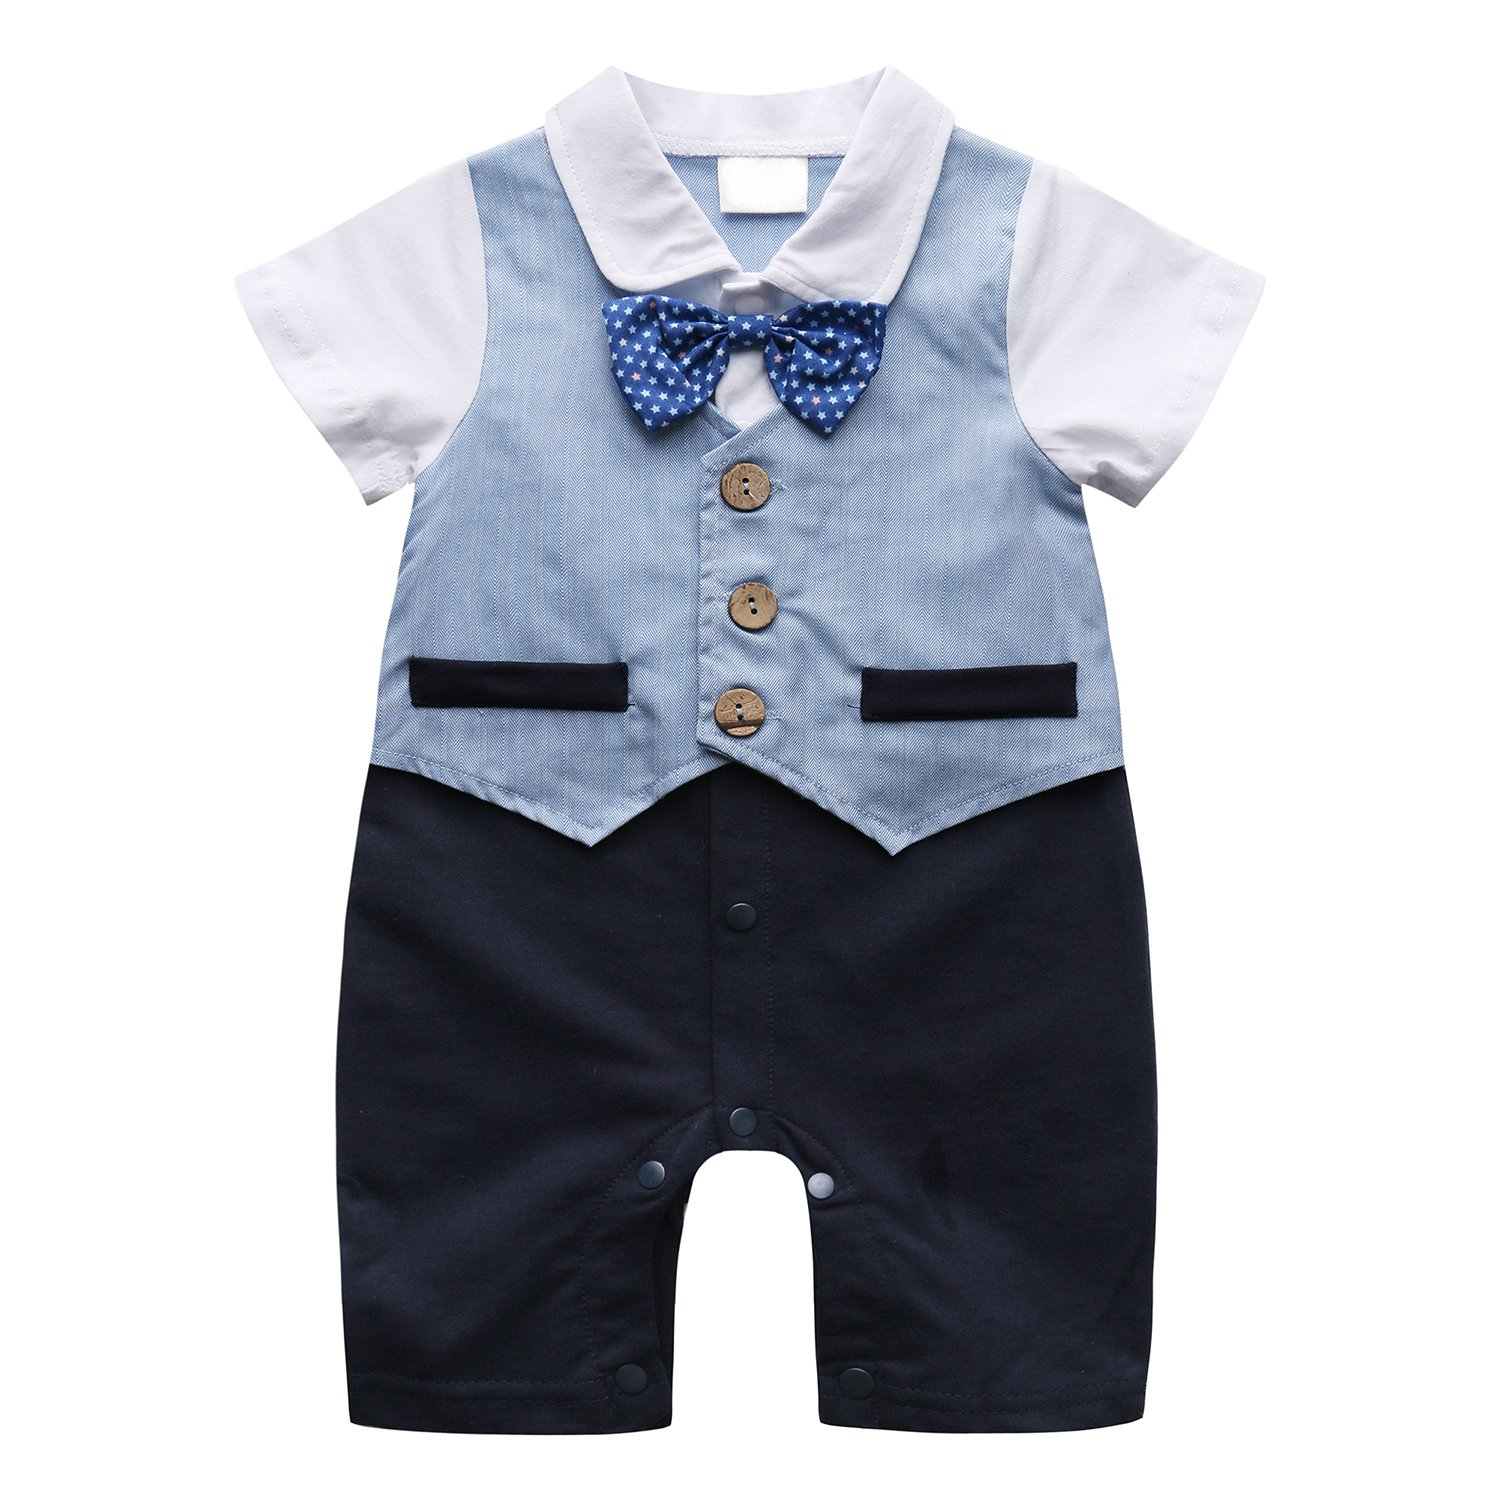 Baby Boy Suit, Toddler Short Sleeve Rompers Infant Outfit Onesie With Bow Tie, 70, Blue